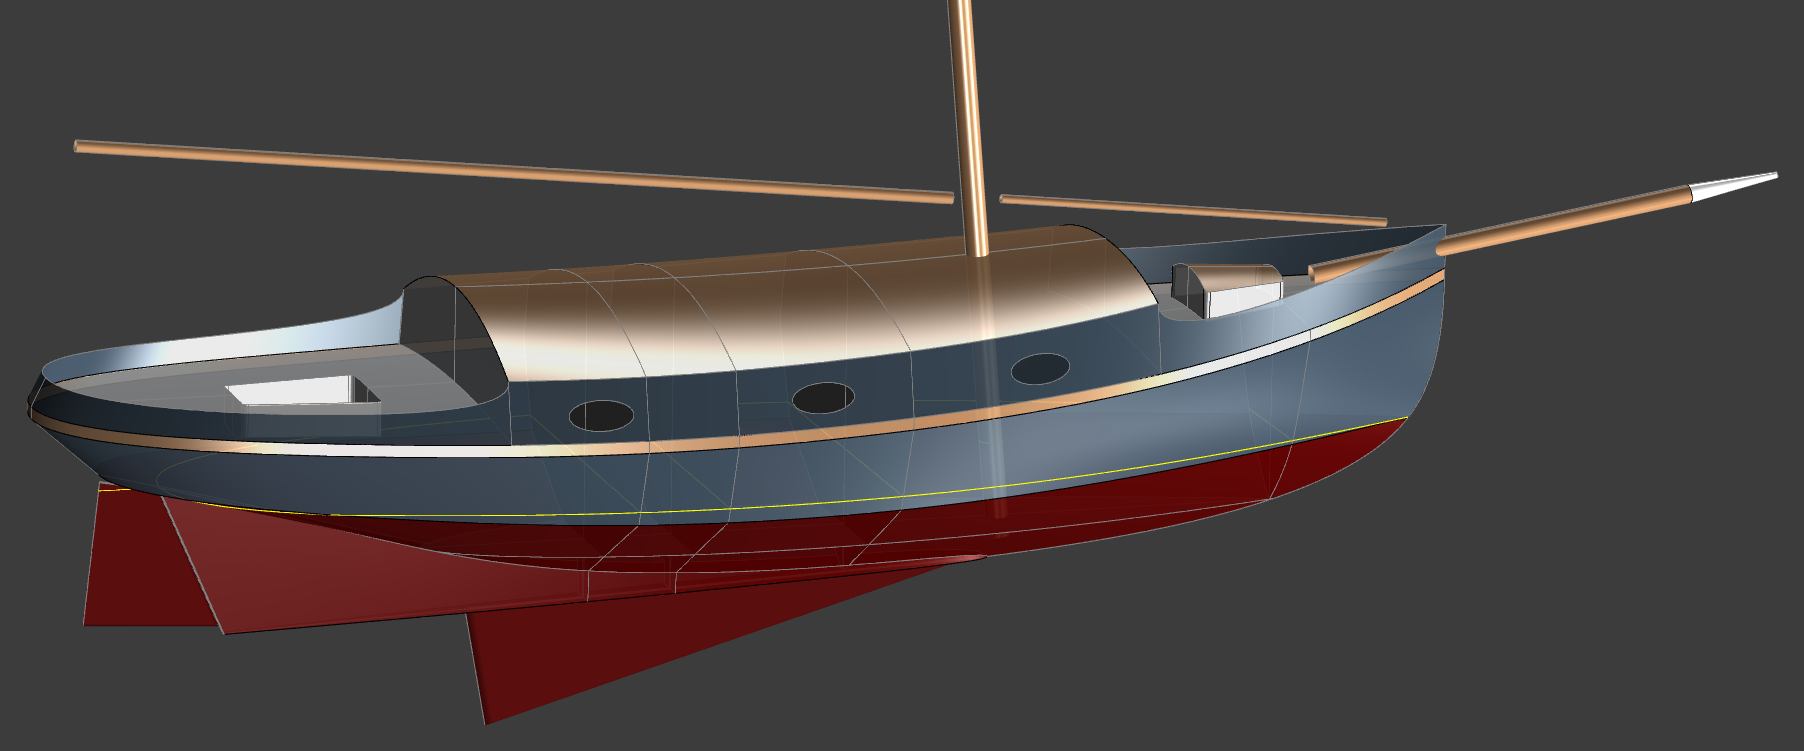 The 38' Cutter CHINA CAT - Kasten Marine Design, Inc.